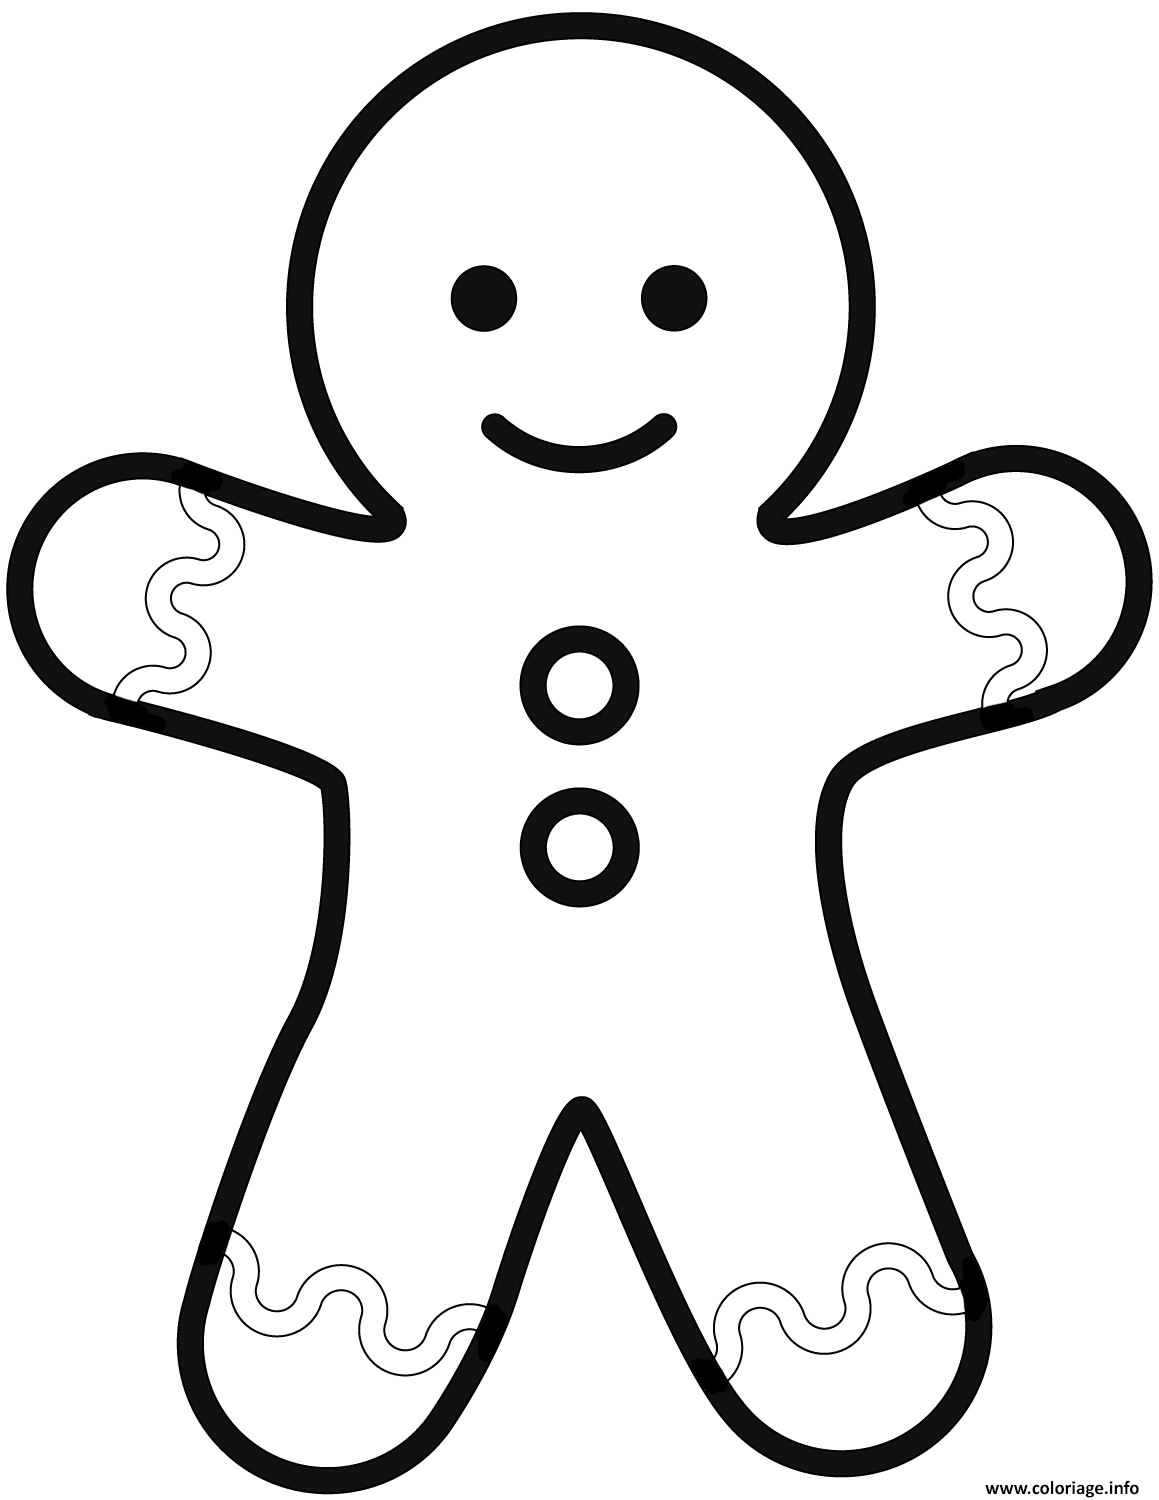 Coloriage Simple Gingerbread Man Dessin à Imprimer